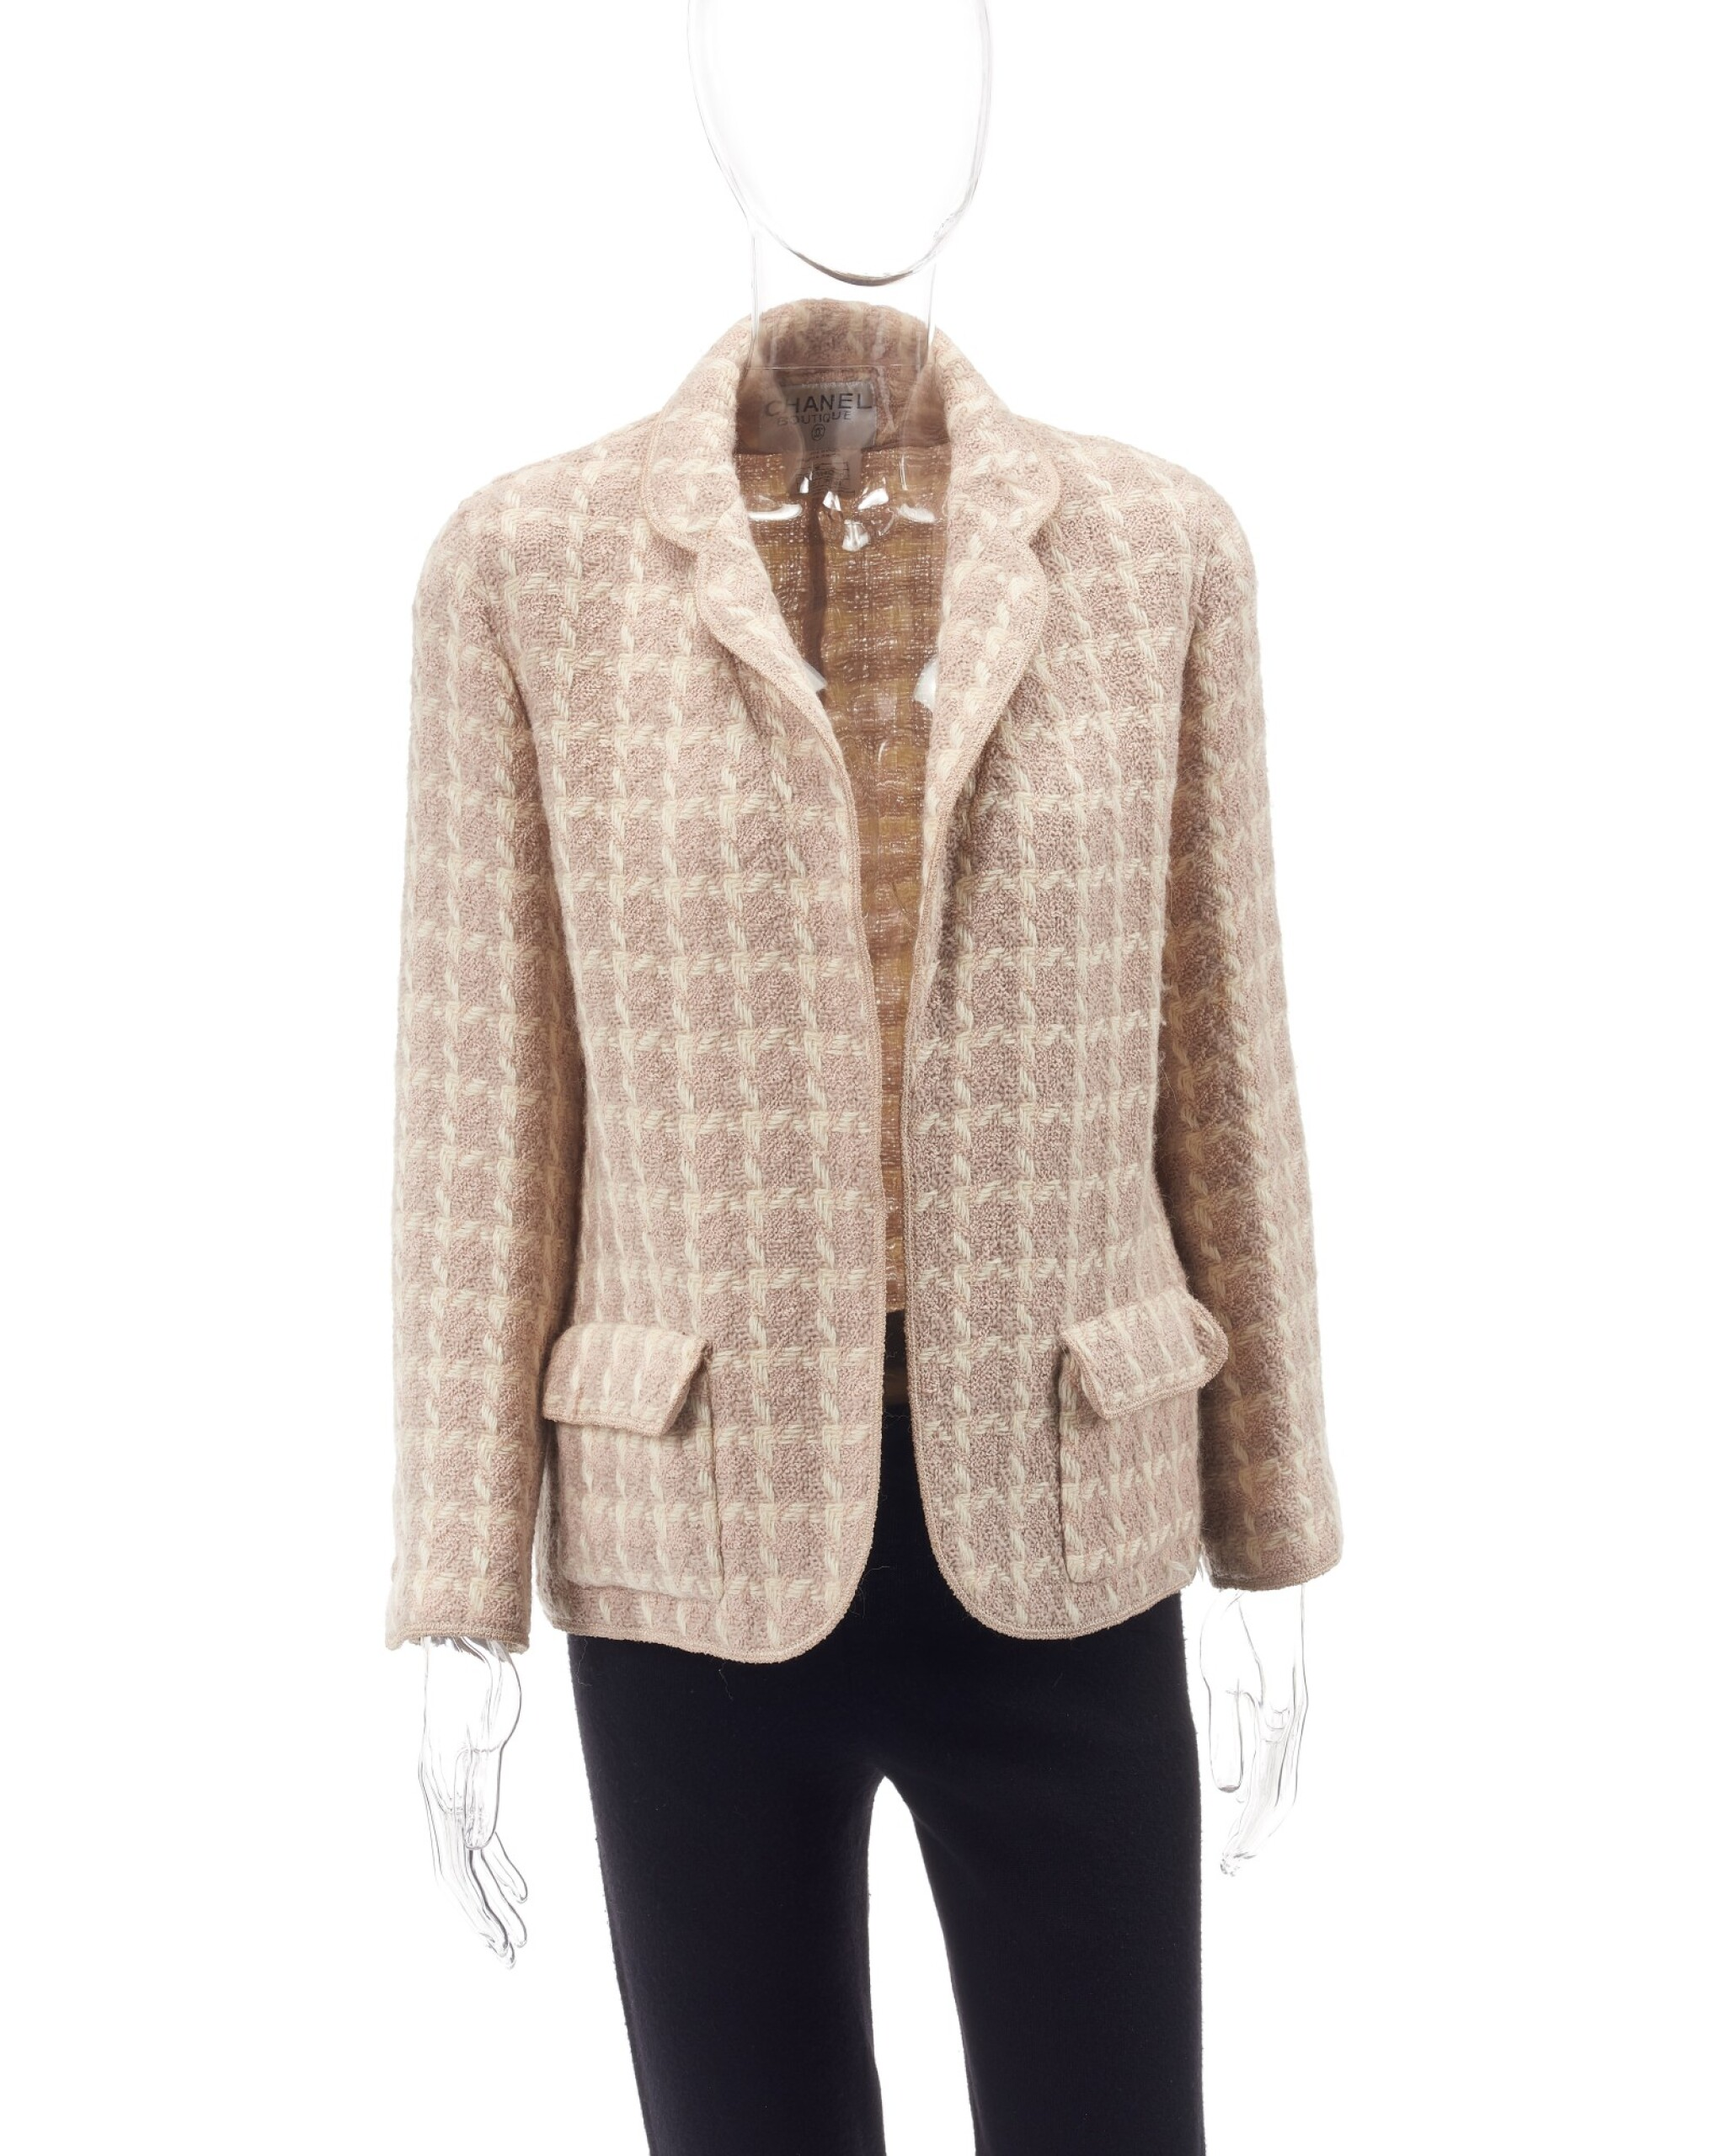 Cream, ivory and powder pink knitted wool jacket